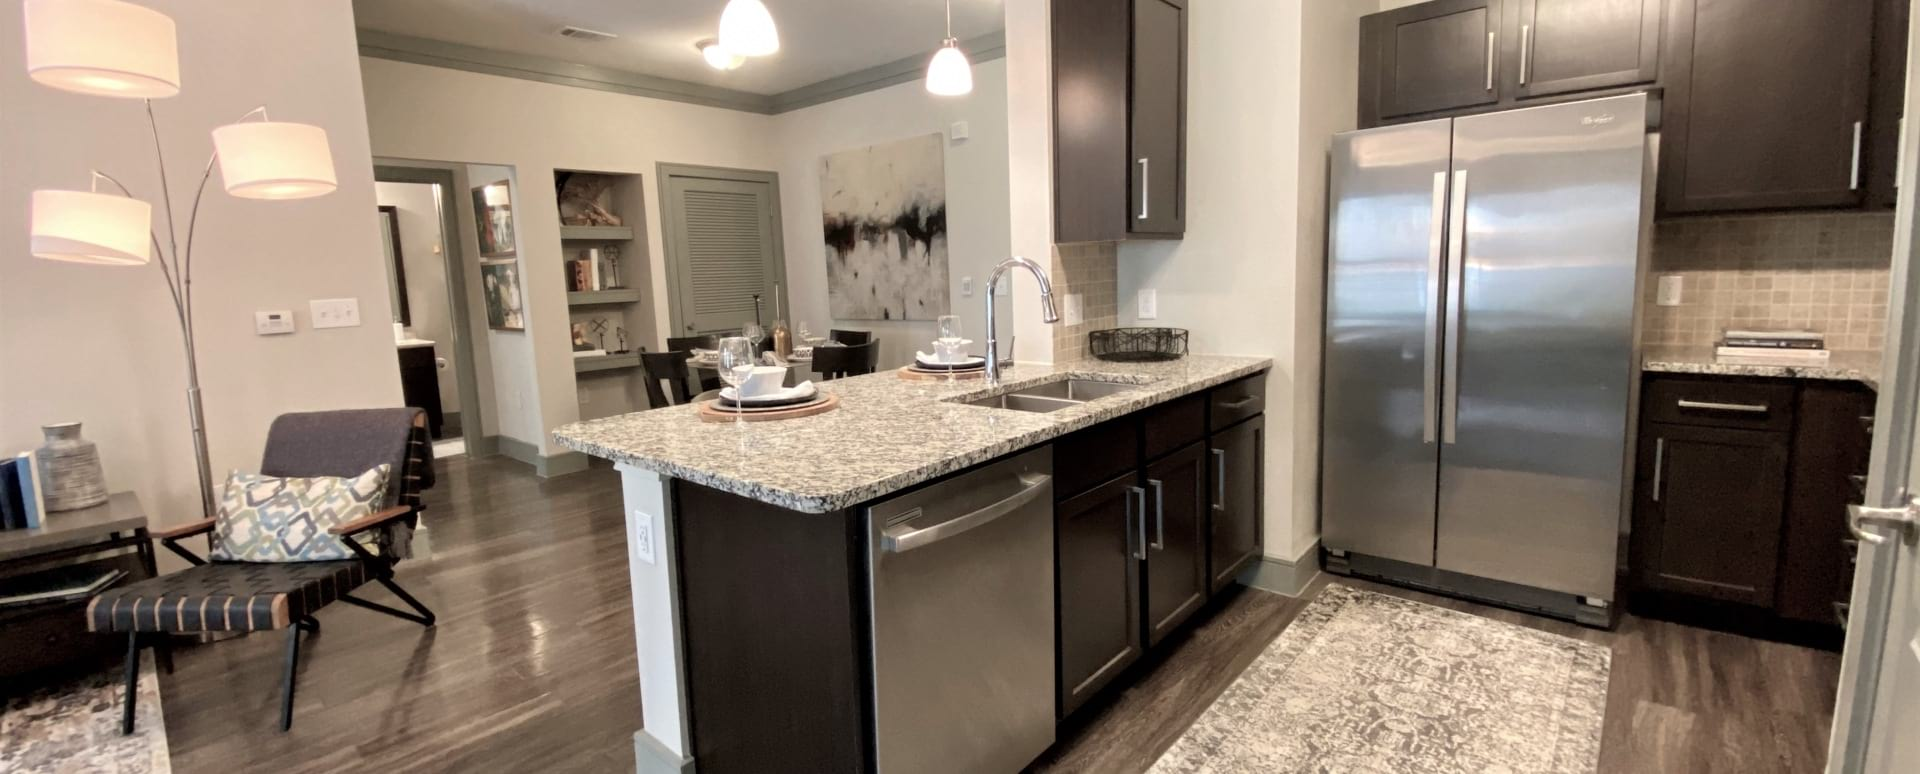 Pet friendly apartments in Spring, TX